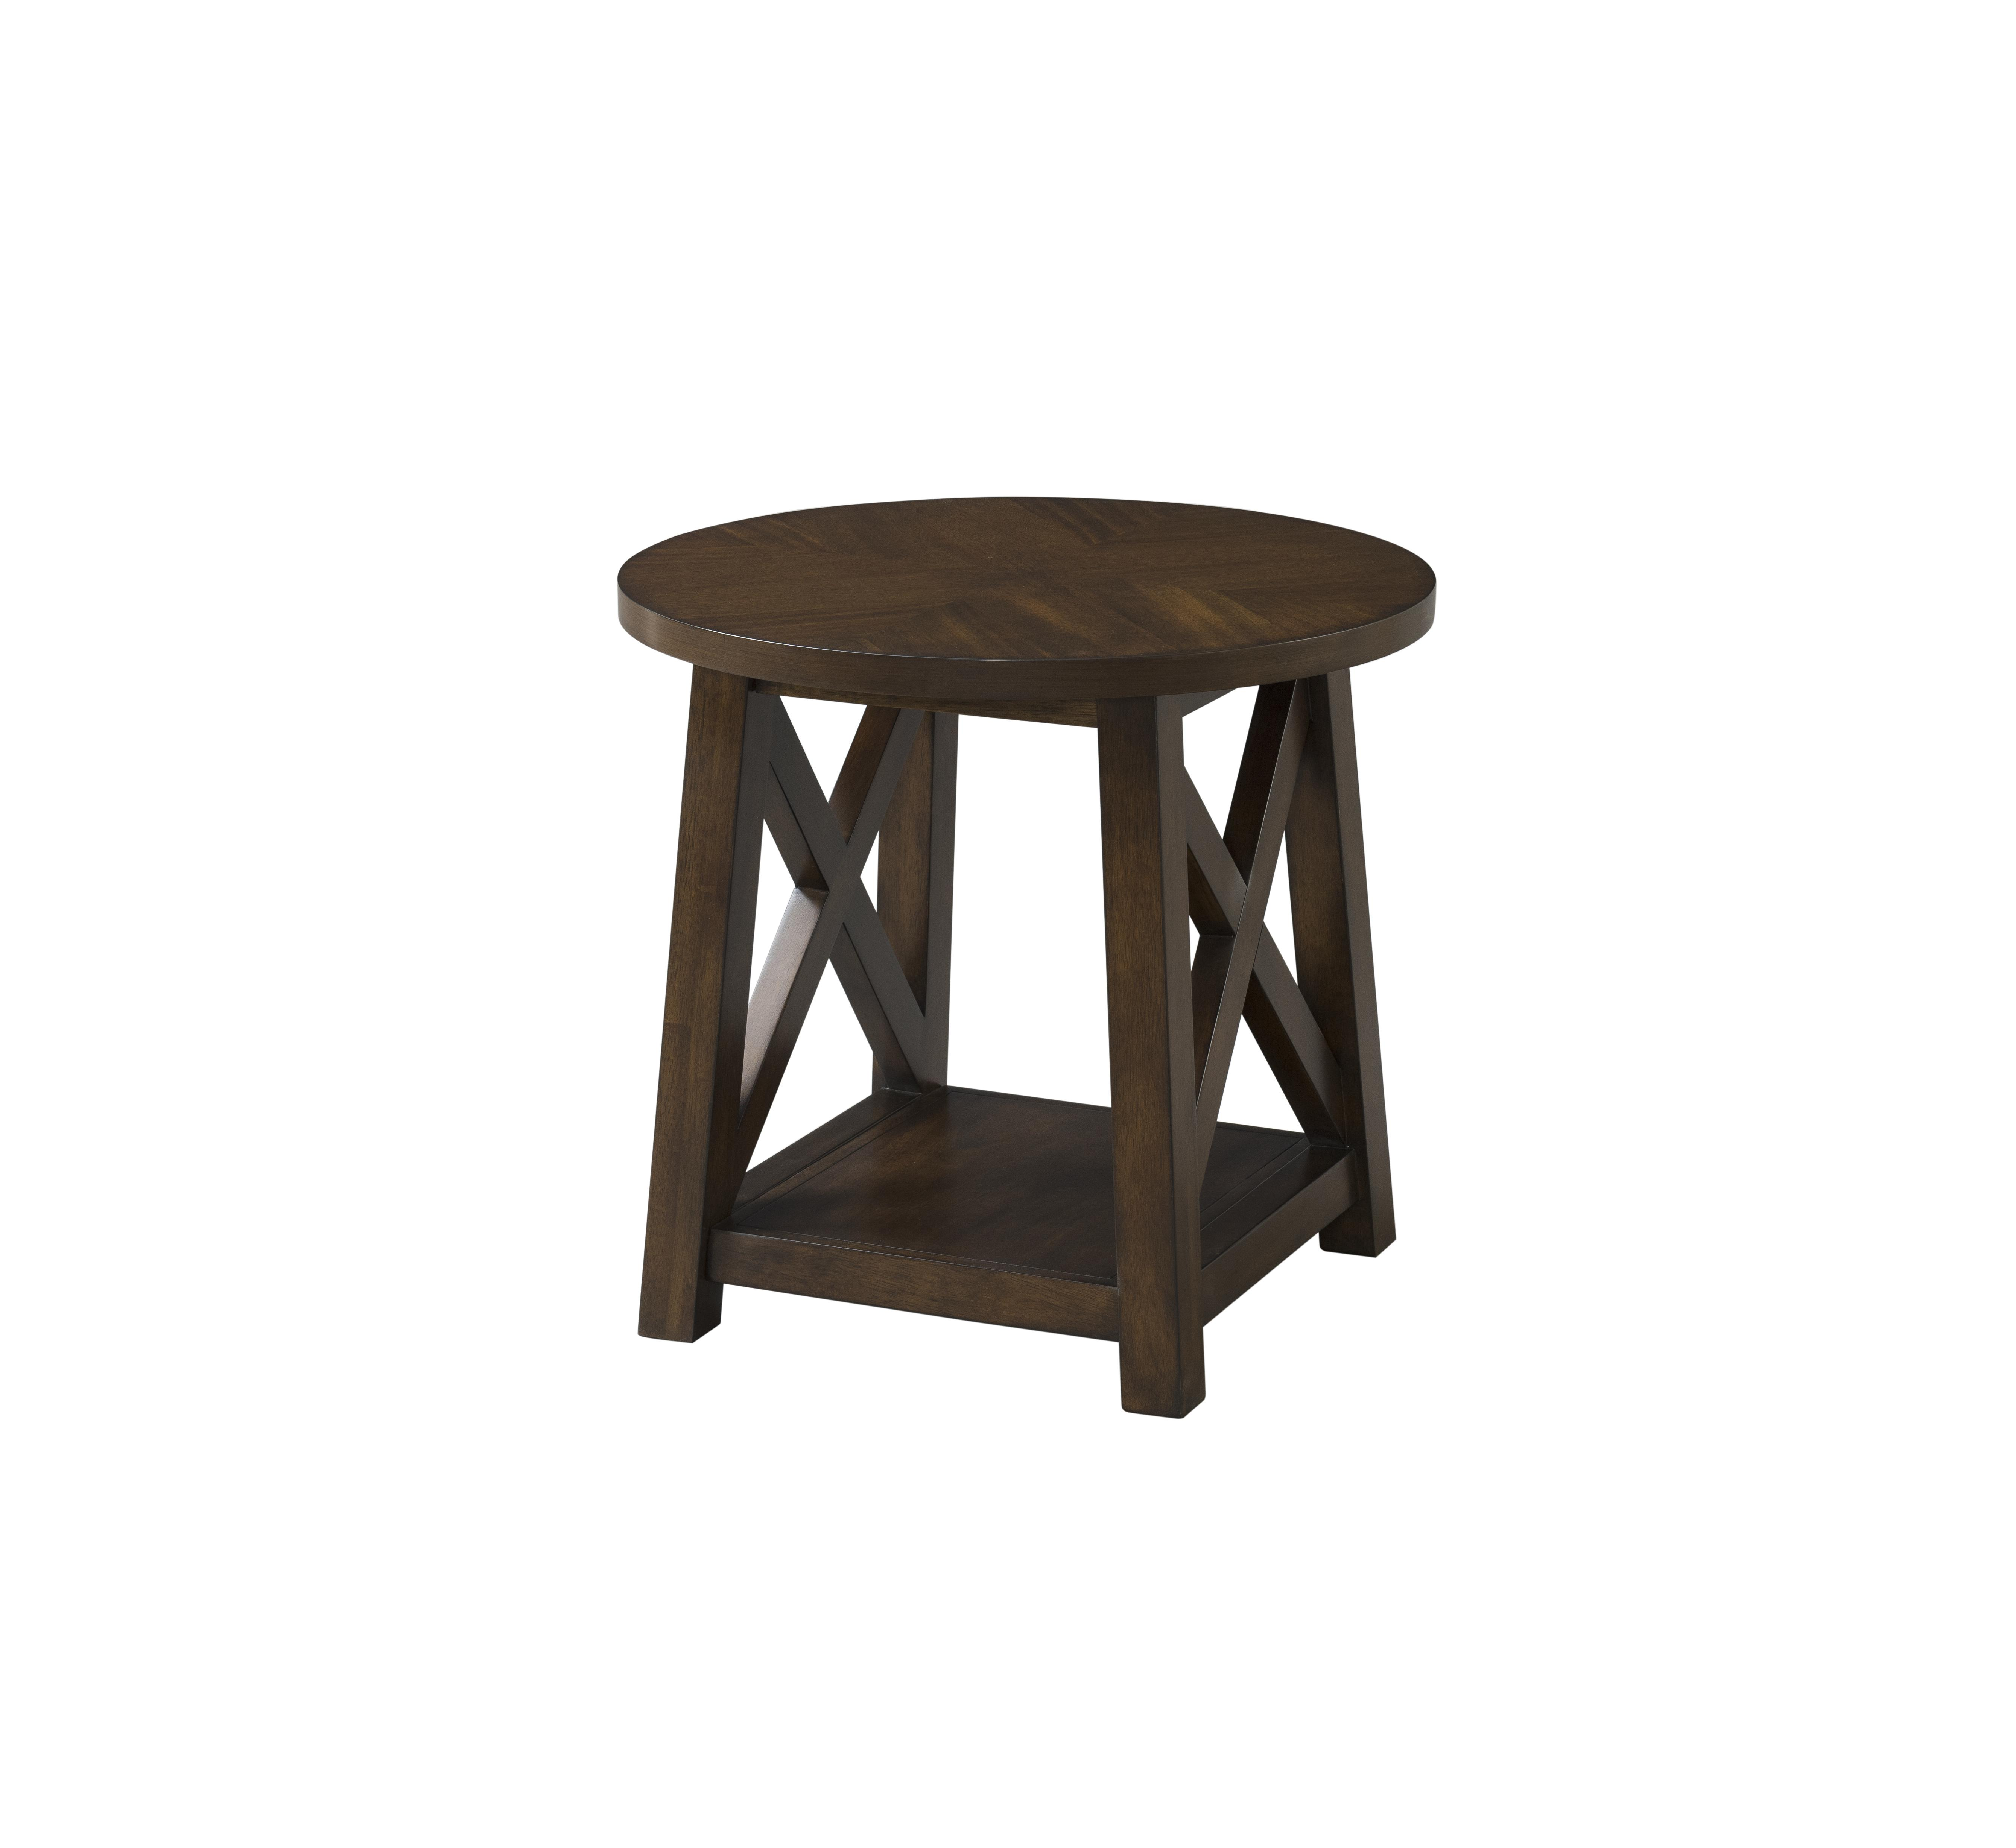 lane furniture brown cherry round end table the classy home lnf finish click enlarge magnolia theater mission style night tables row accent chairs farm wood coffee speakers dog